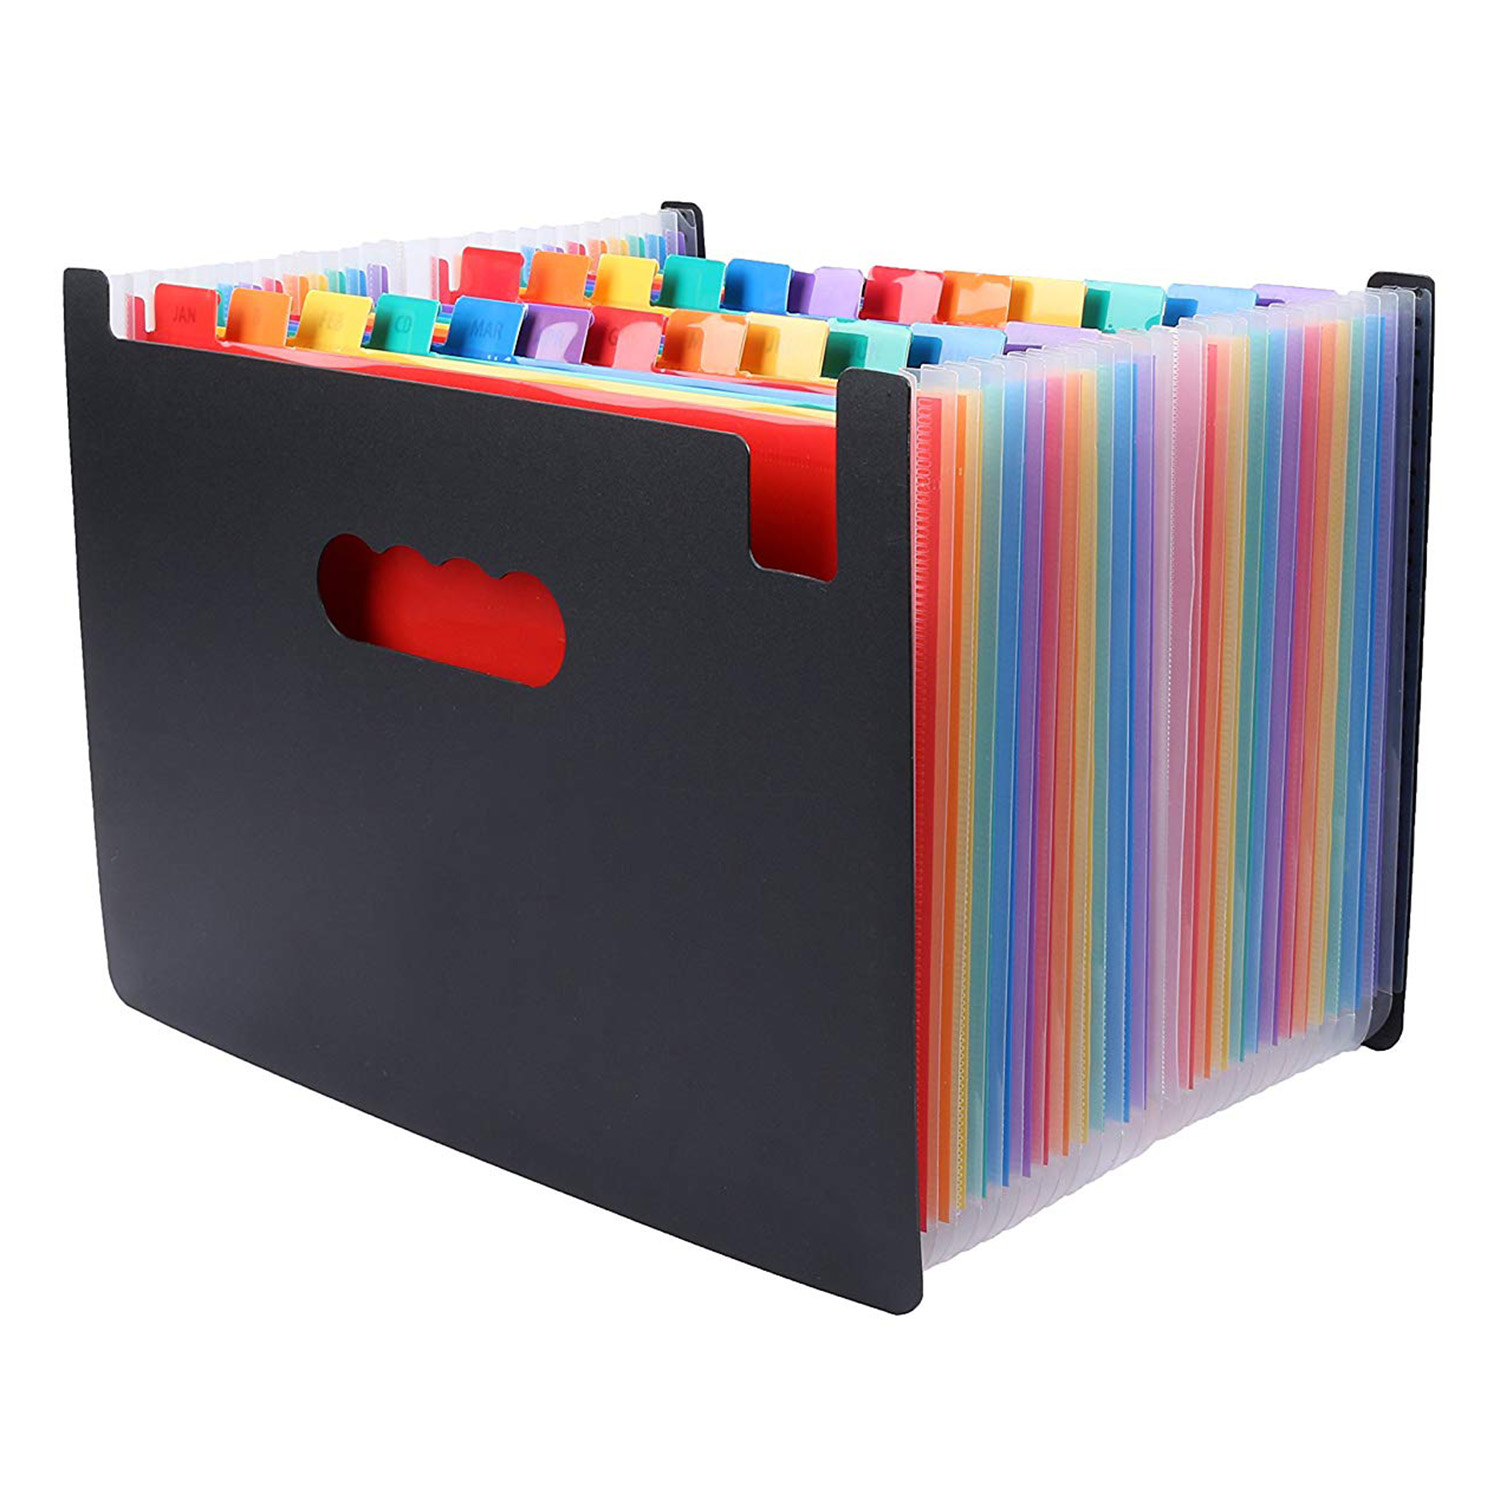 24 Pockets Expanding File Folder Large Space Design A4 Filing Folders Box File Business Home Office Document Accordion File St борис акунин фантастика